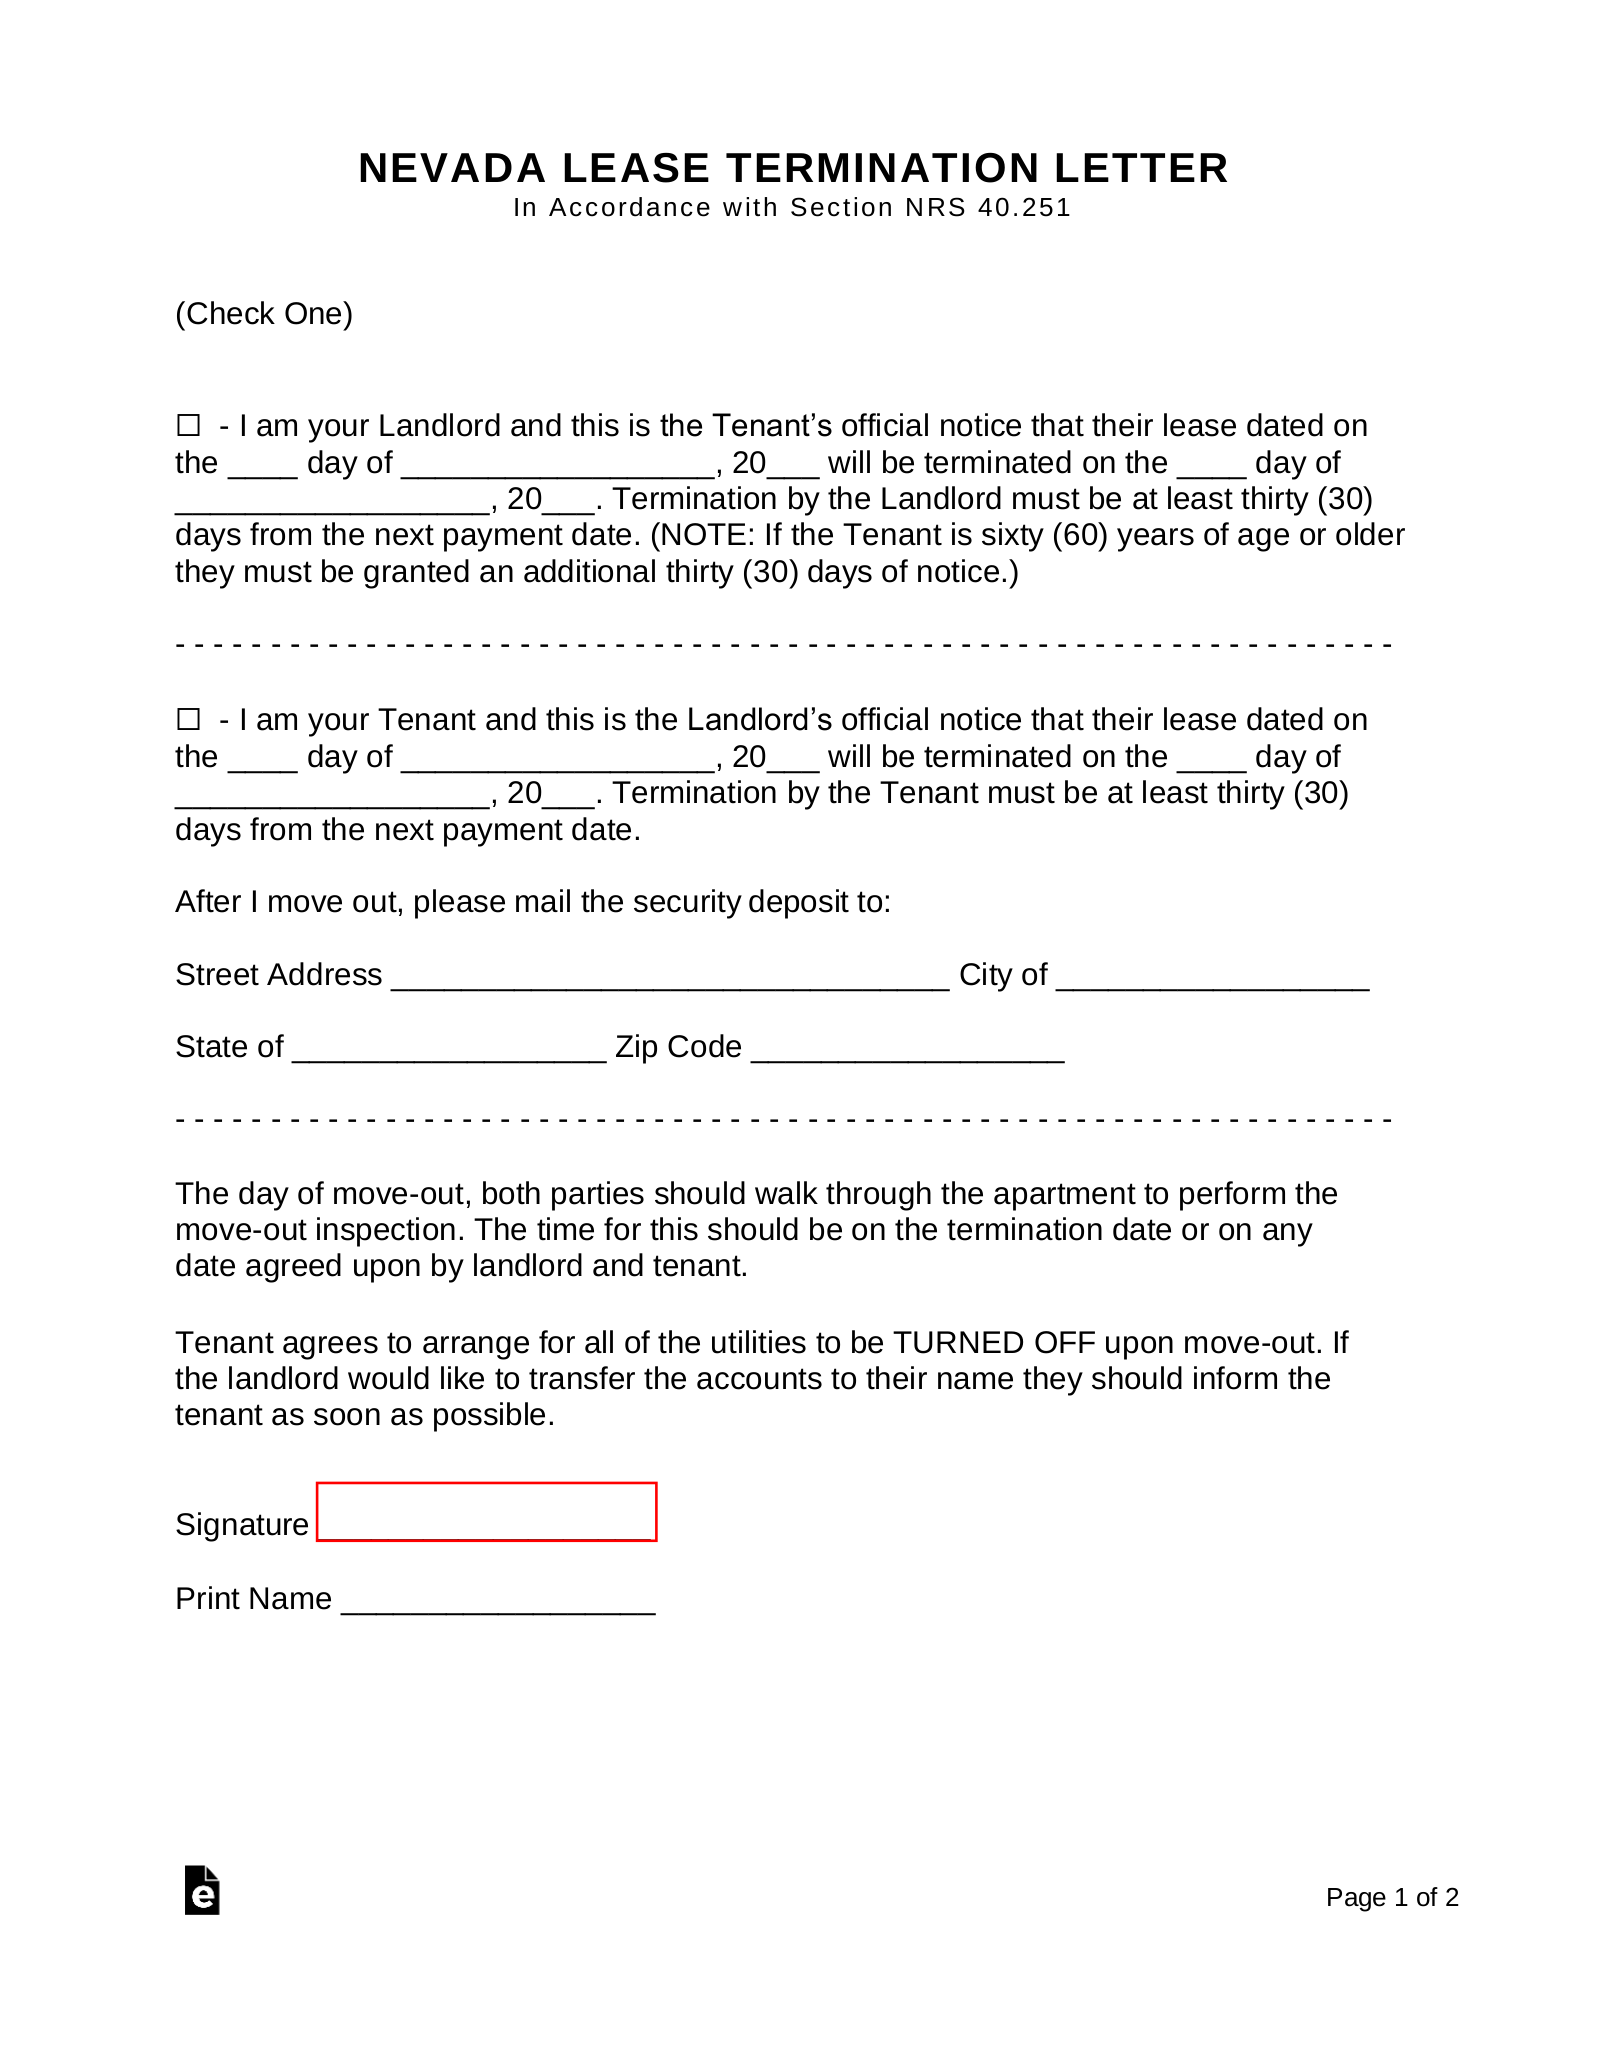 Nevada Lease Termination Letter   30 Day Notice – eForms